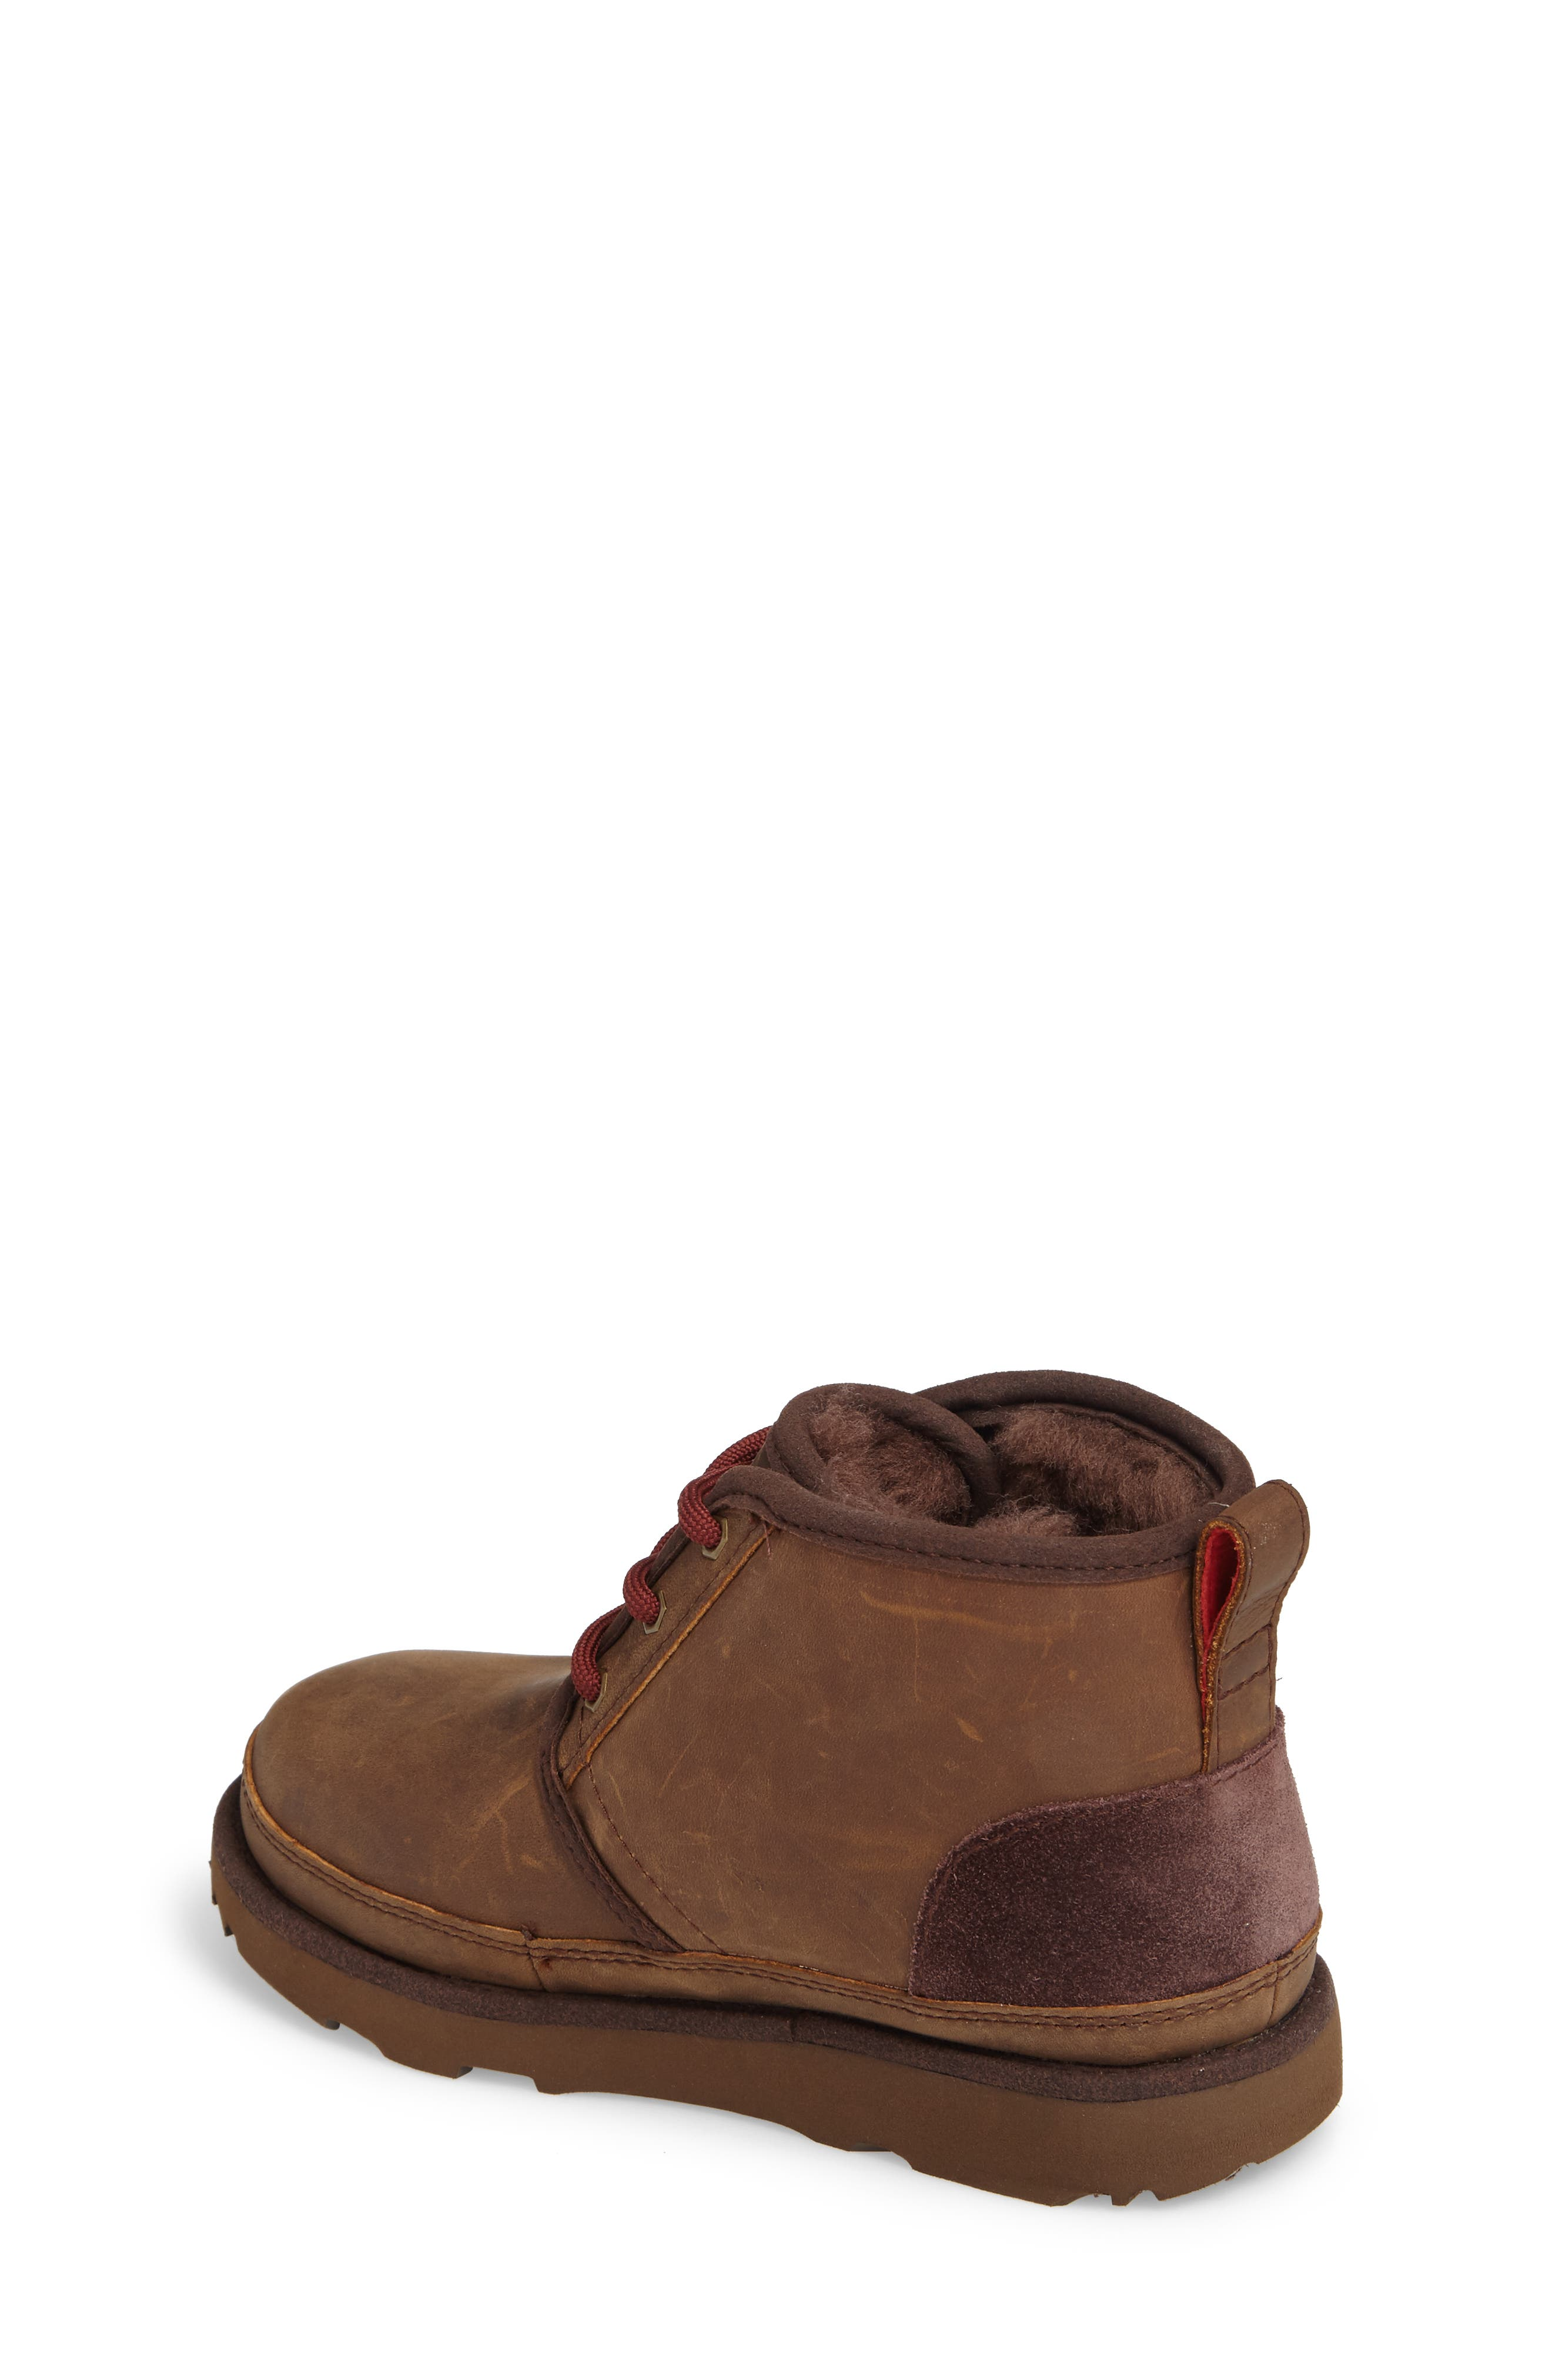 Neumel II Waterproof Chukka,                             Alternate thumbnail 2, color,                             Grizzly